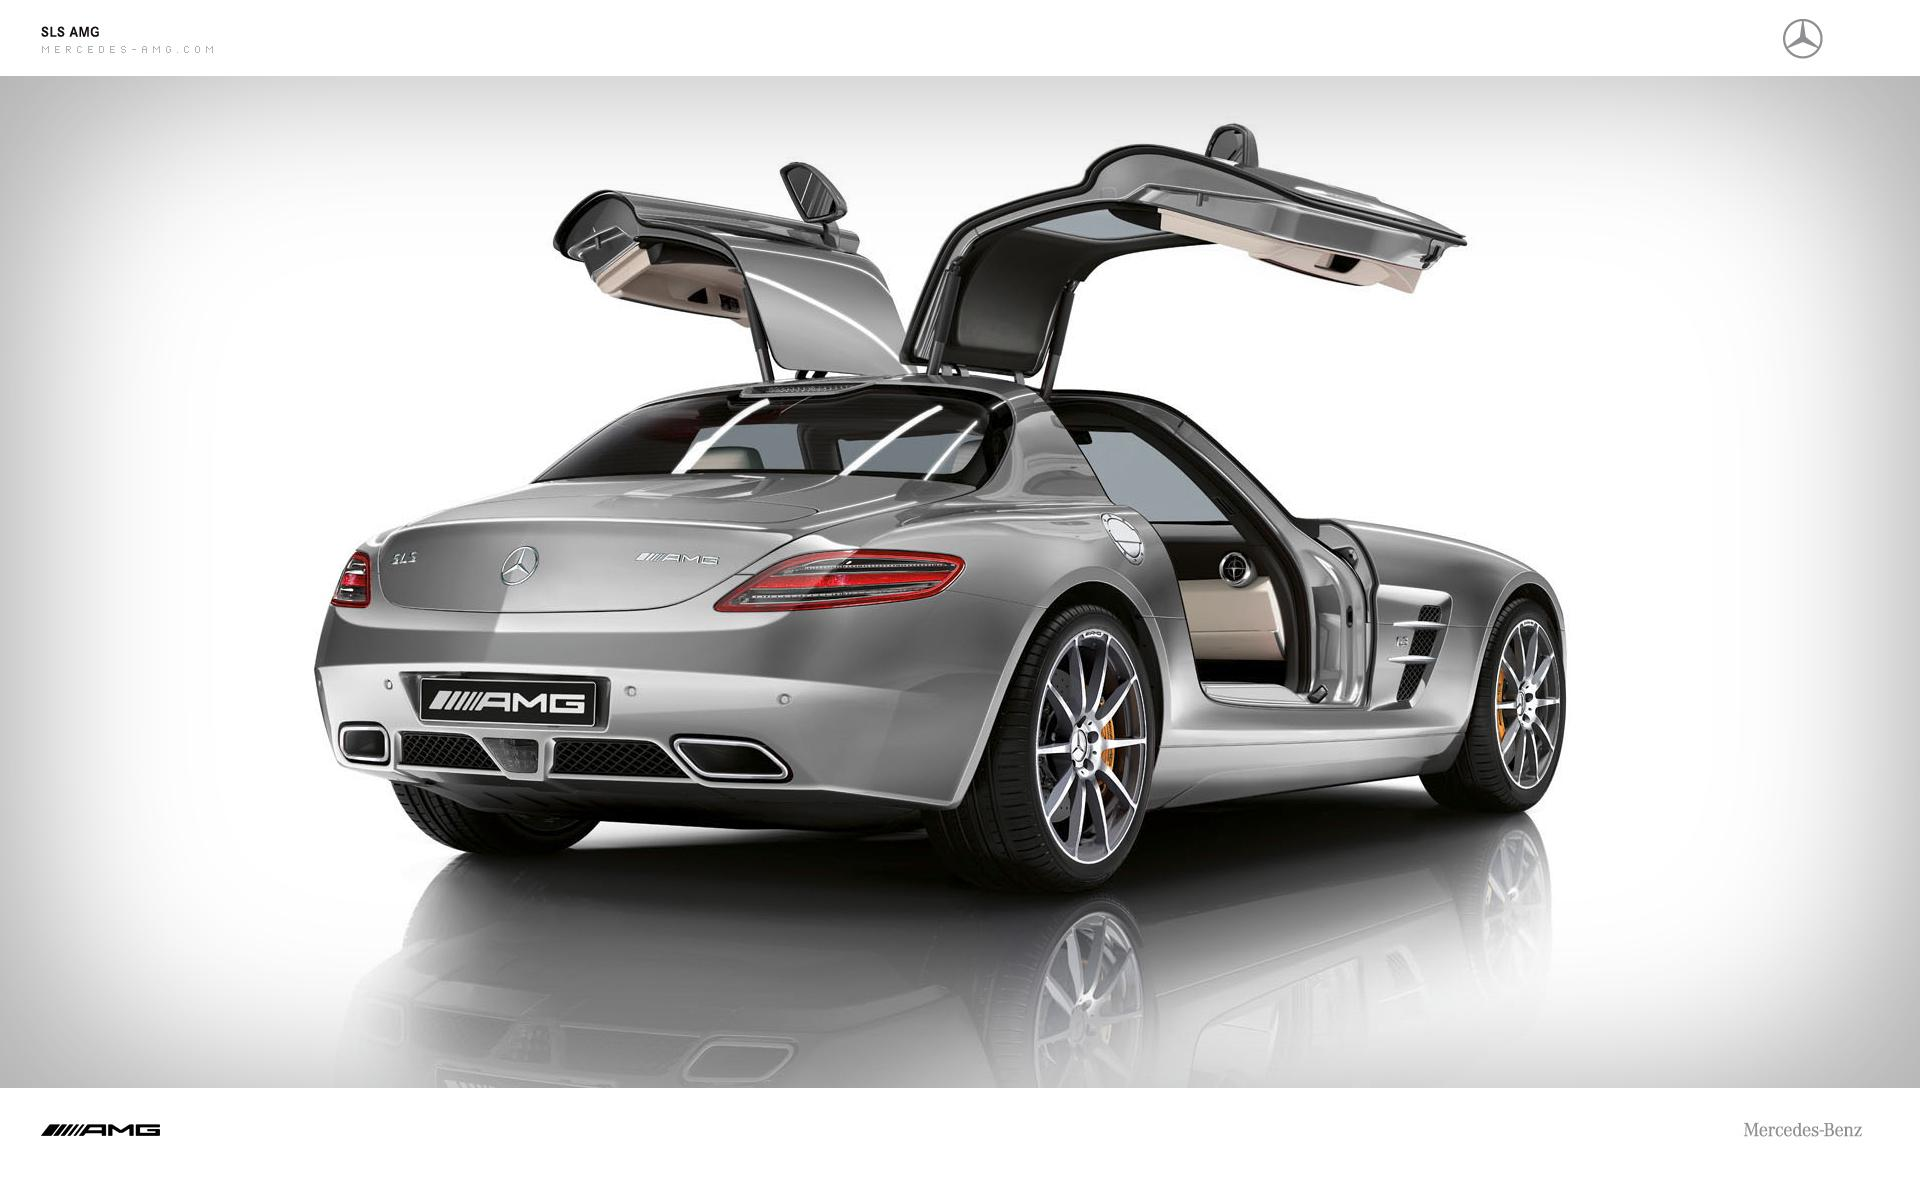 2012 mercedes benz sls amg images photo mercedes benz sls for Mercedes benz sls amg price 2012